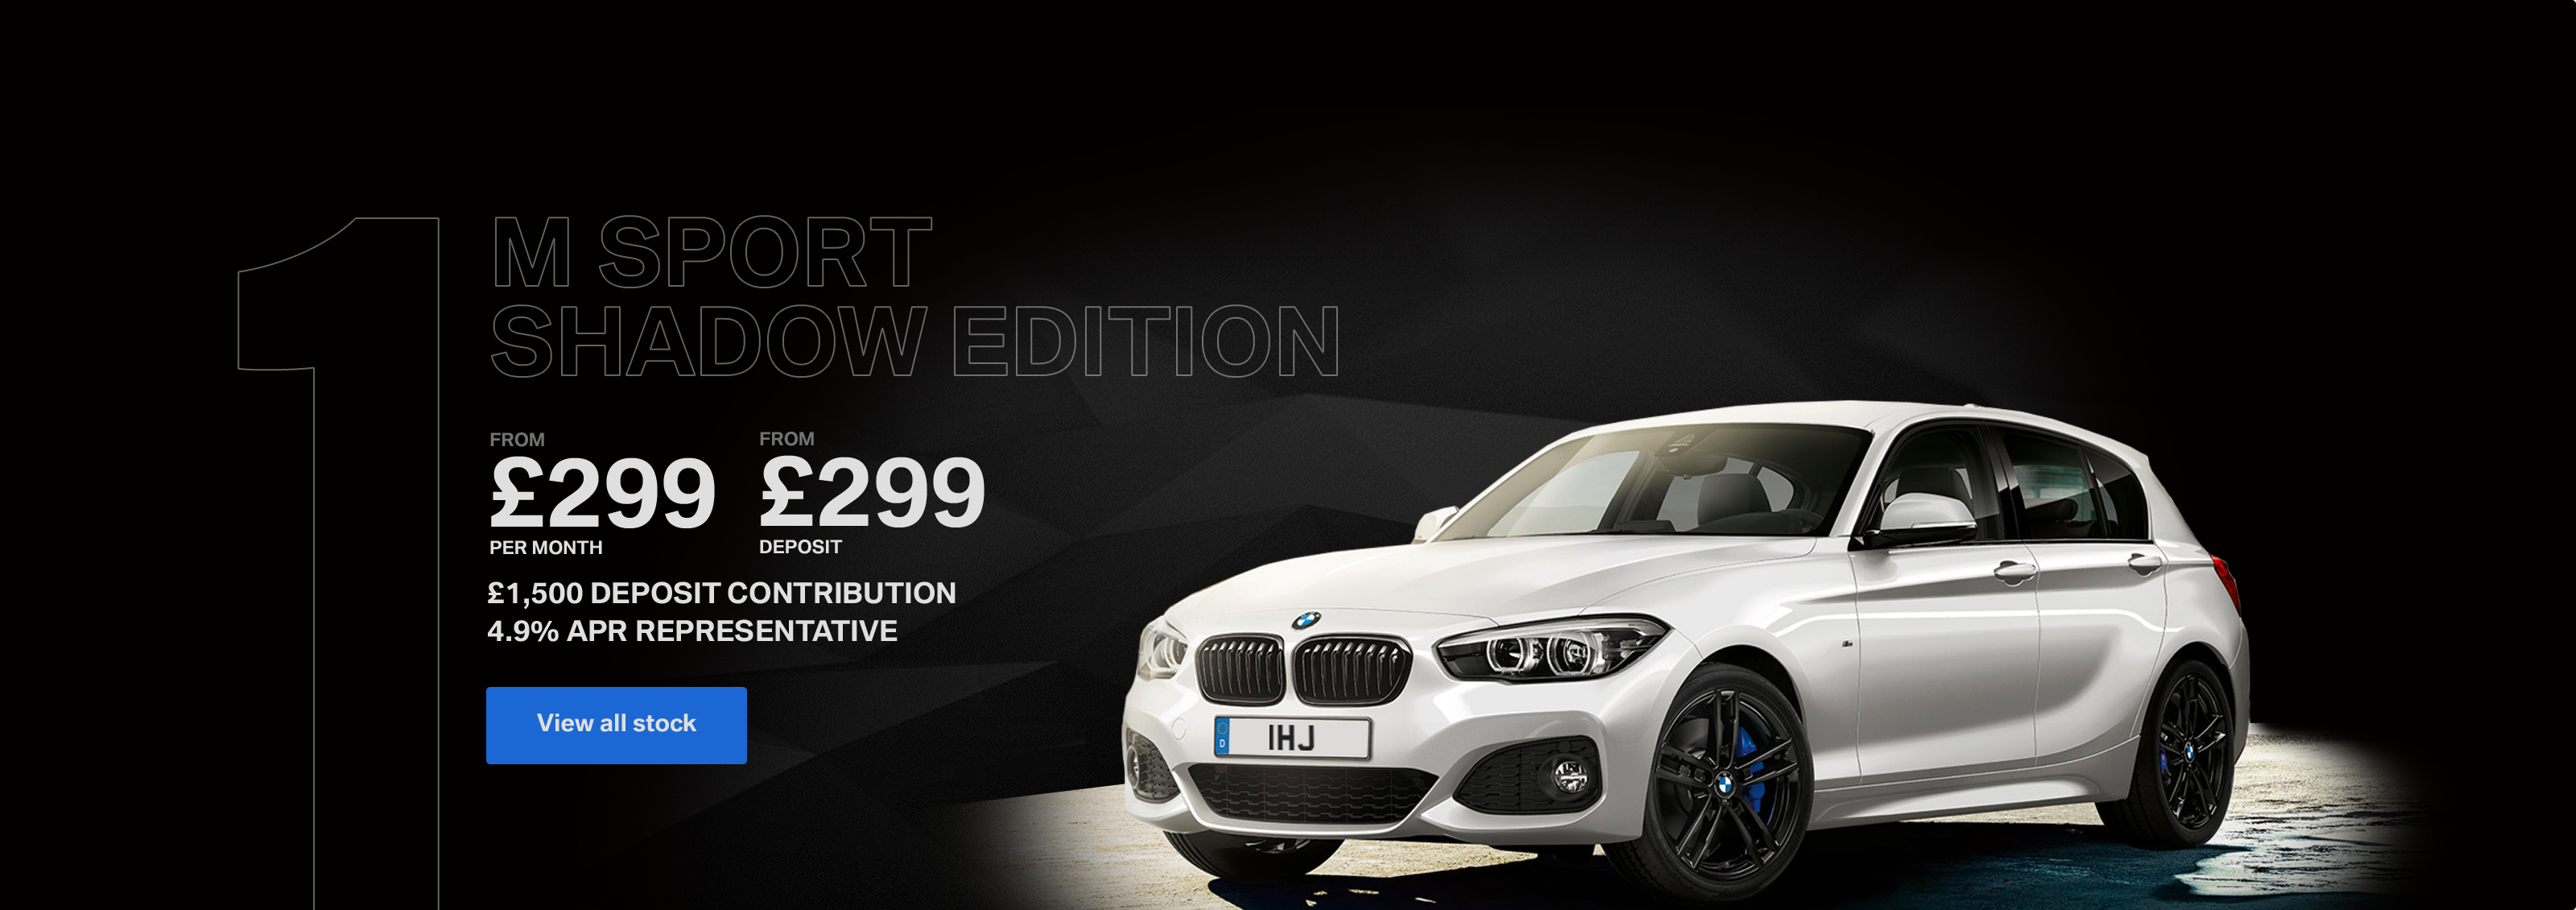 BMW 1 Series Shadown Edition Image 1